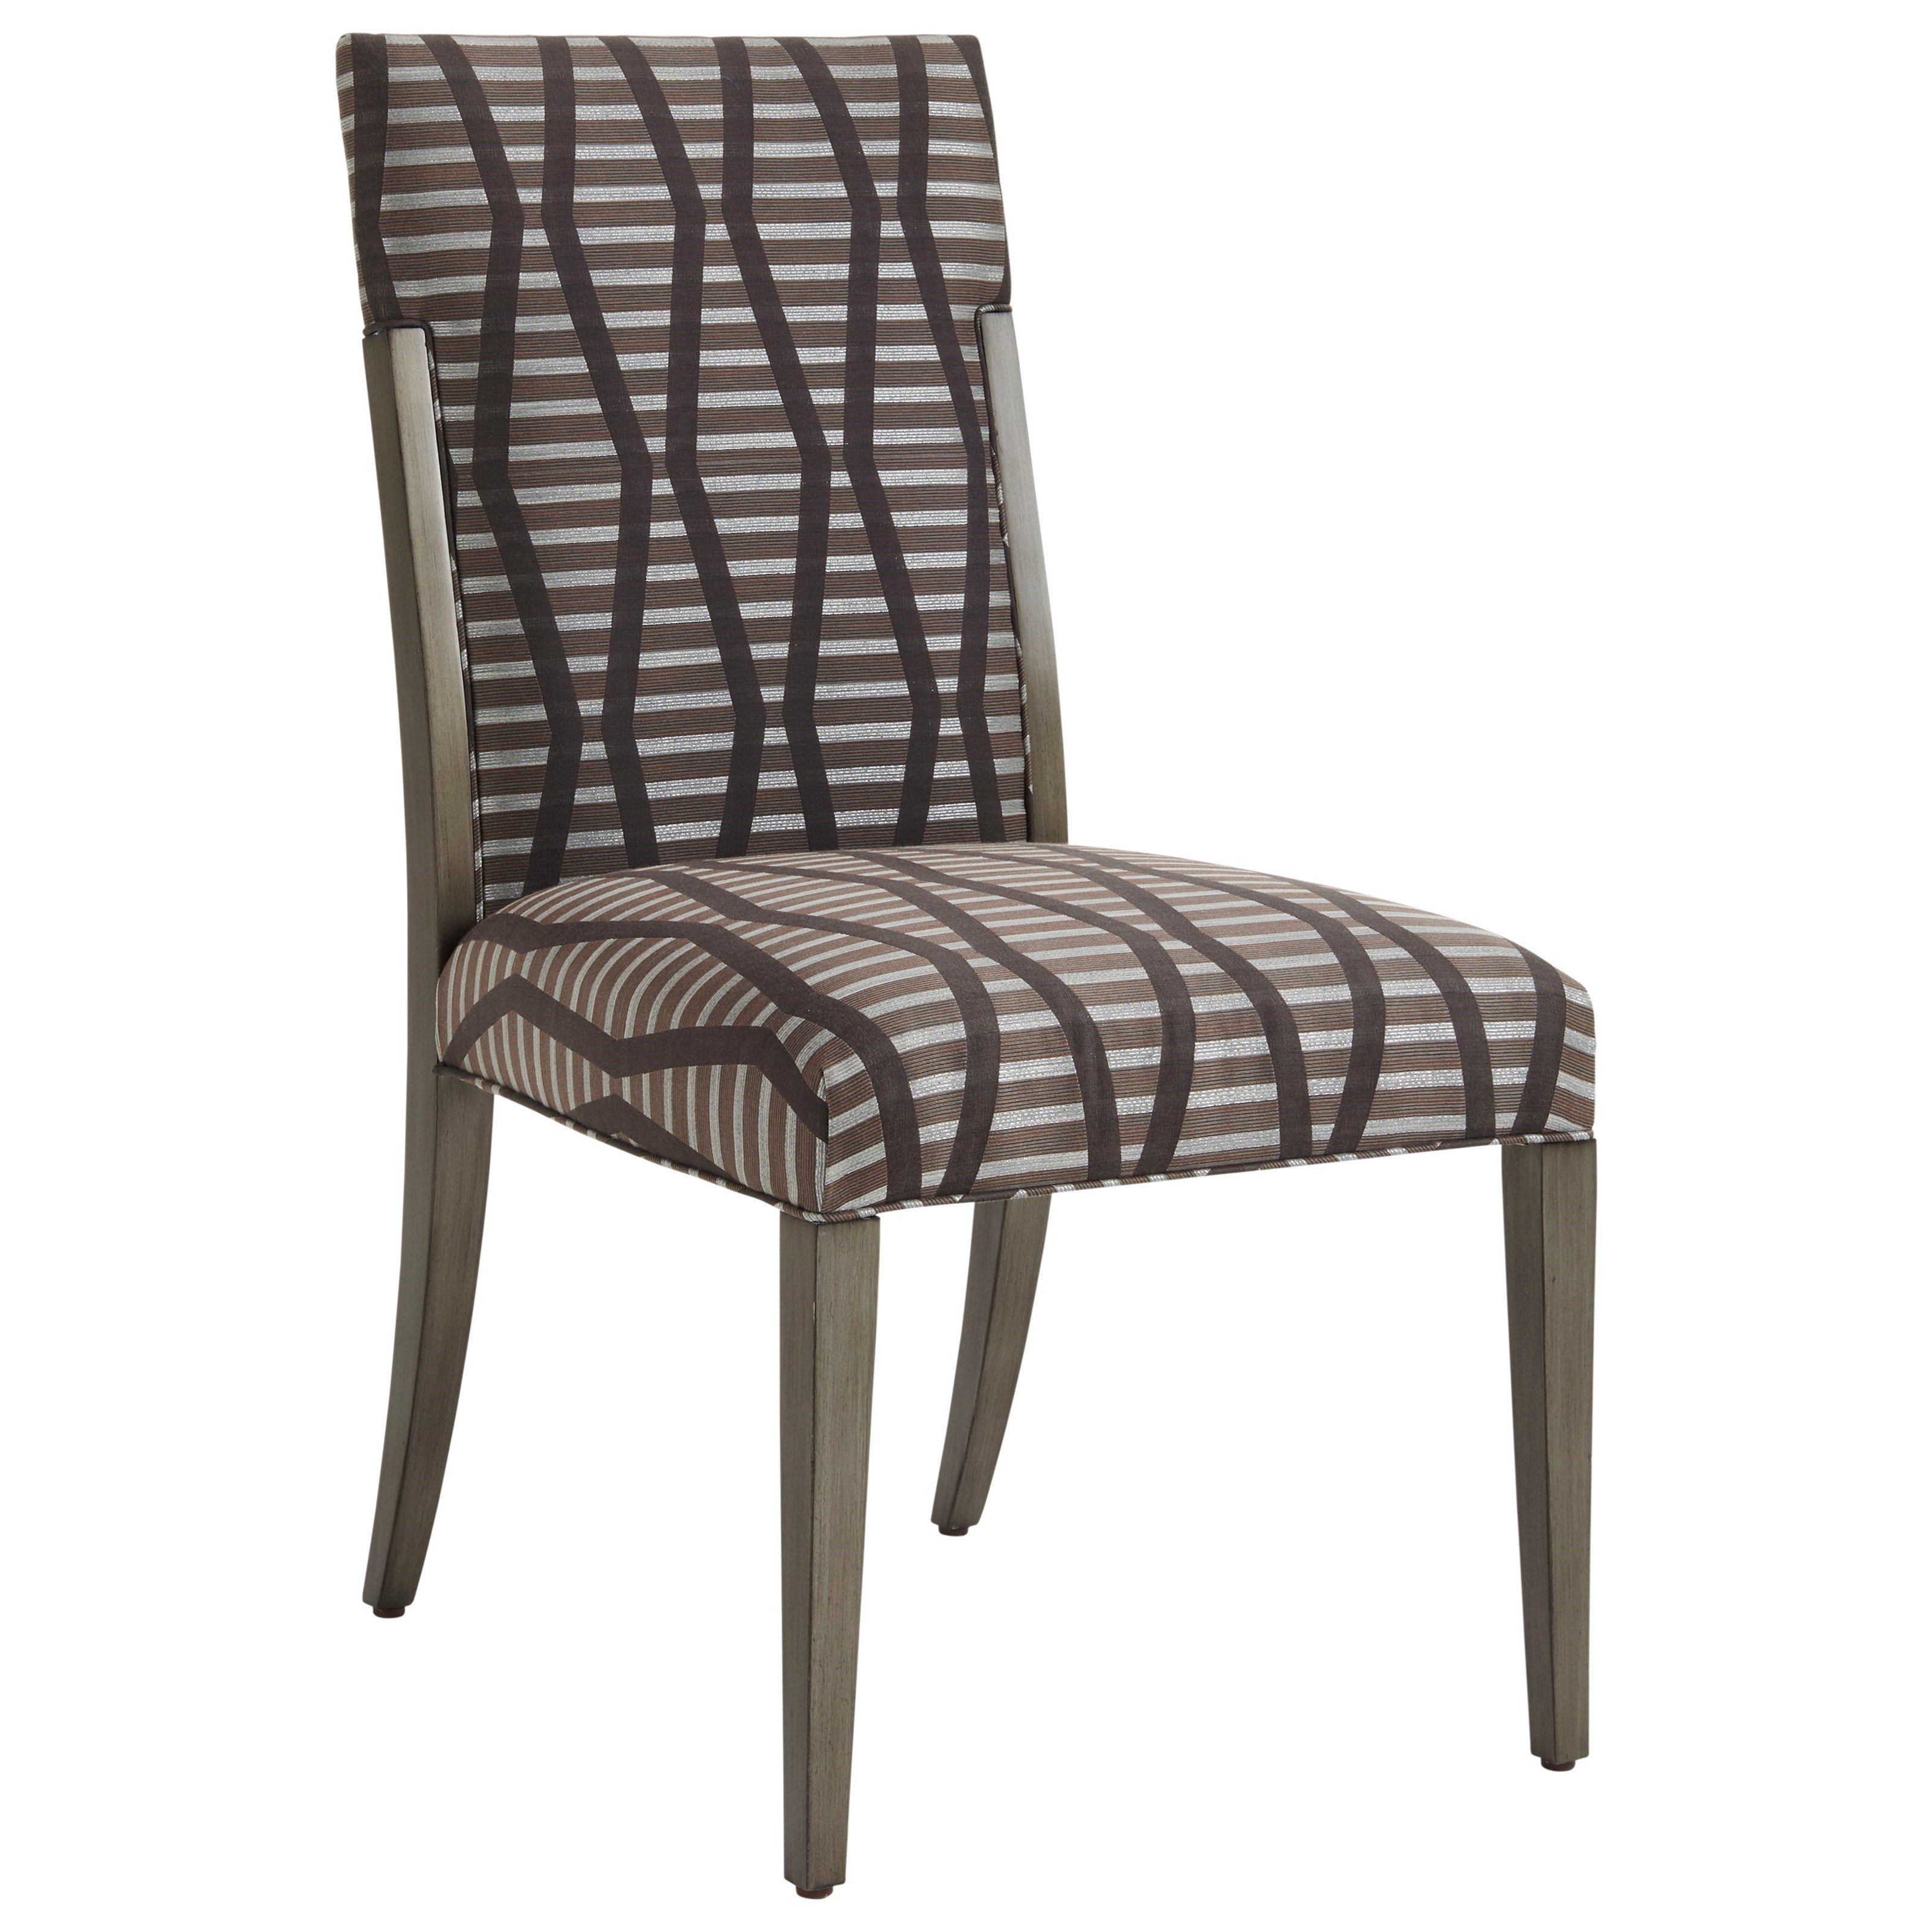 Ariana Saverne Upholstered Side Chair by Lexington at Furniture Fair - North Carolina